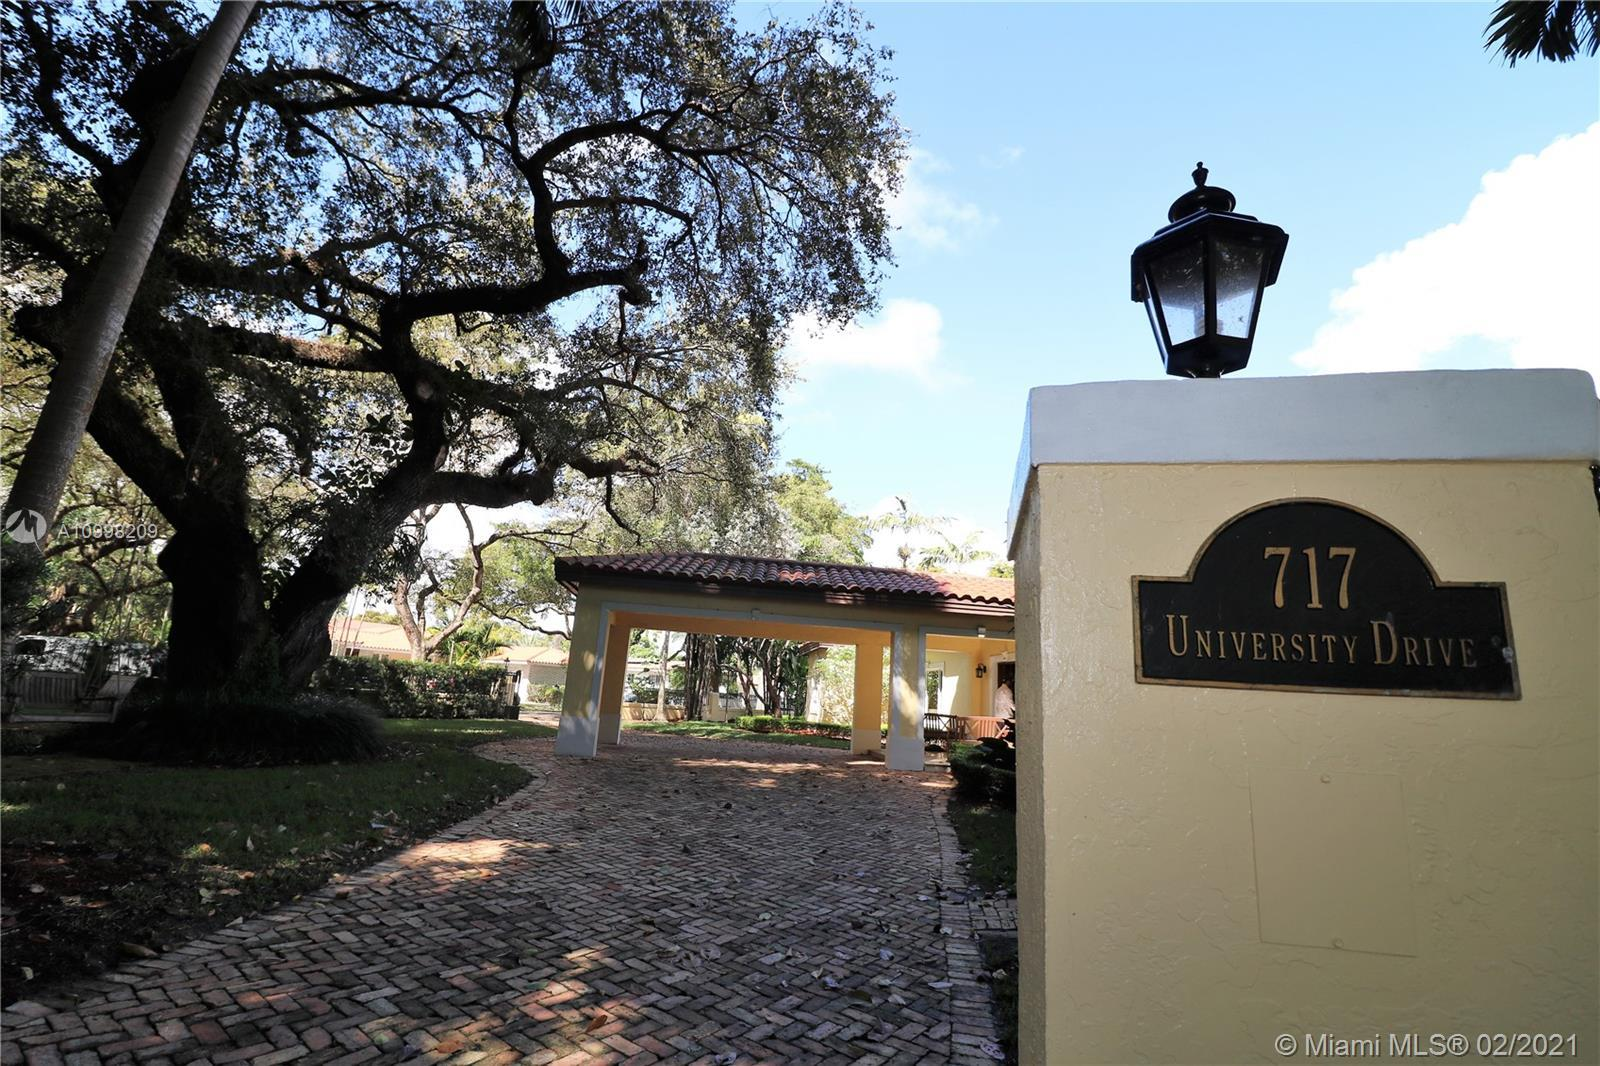 Immaculate 4 bedroom, 5.5 bath residence in the Golden Triangle section of Coral Gables known for it